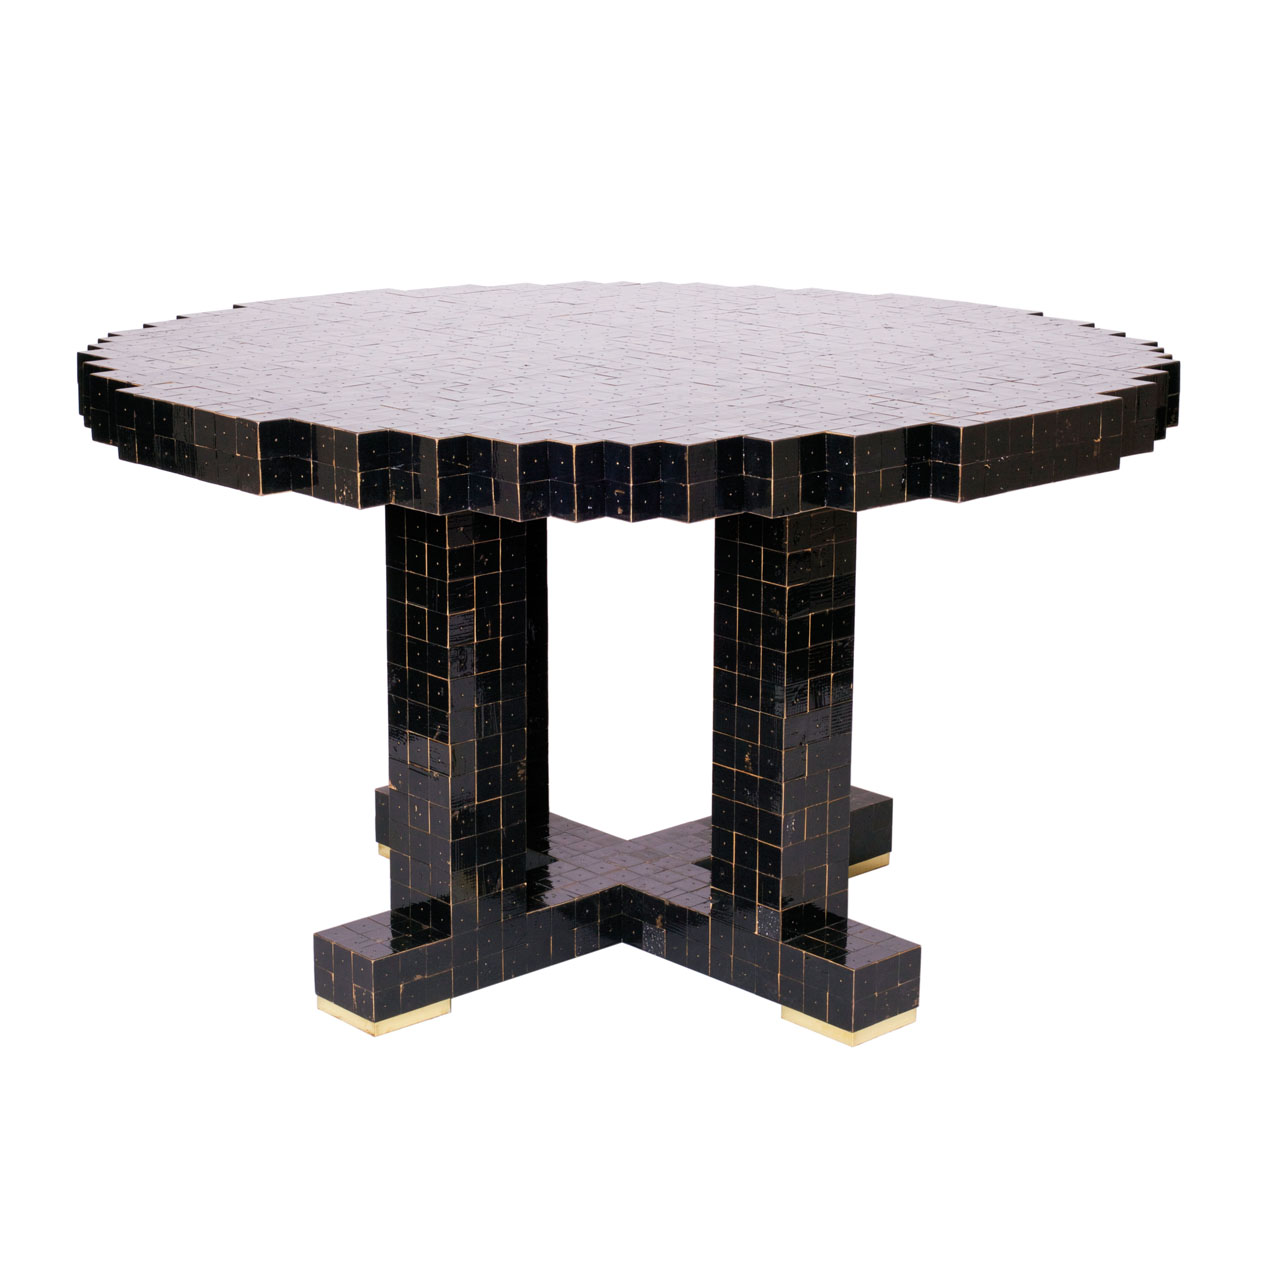 "One of a kind ""40 x 40 Waste "" Dining Table by Piet Hein Eek"